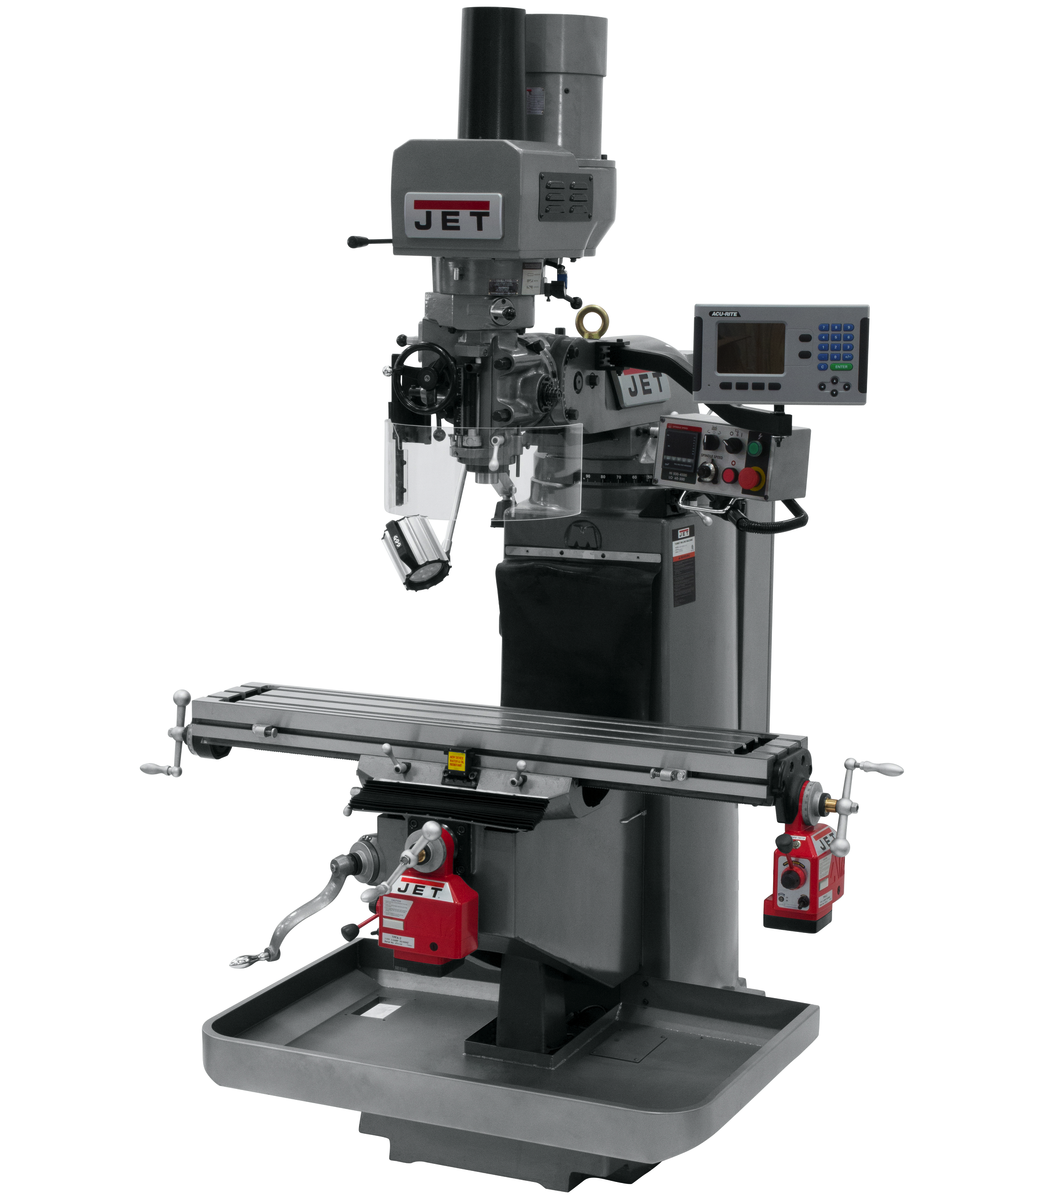 JTM-949EVS Mill With 3-Axis Acu-Rite 203 DRO (Quill) With X and Y-Axis Powerfeeds and Air Powered Draw Bar